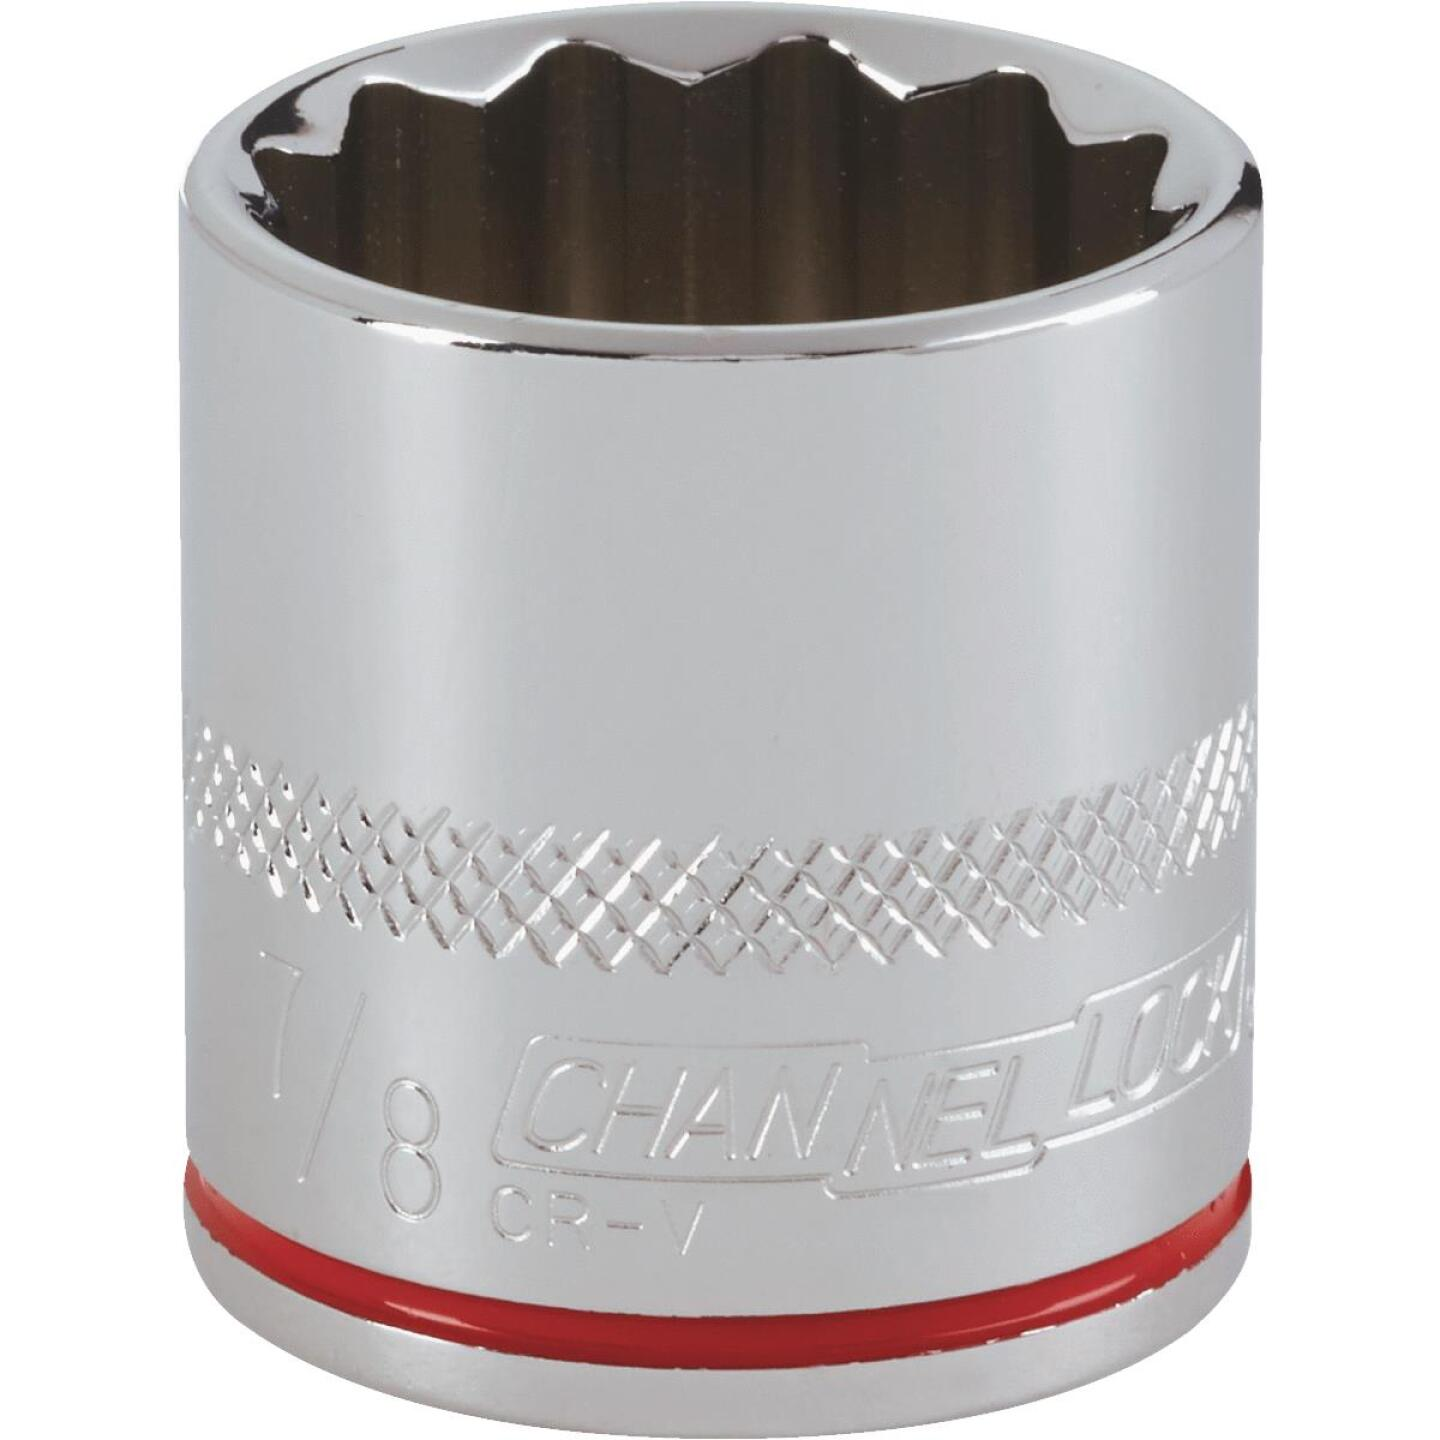 Channellock 3/8 In. Drive 7/8 In. 12-Point Shallow Standard Socket Image 1